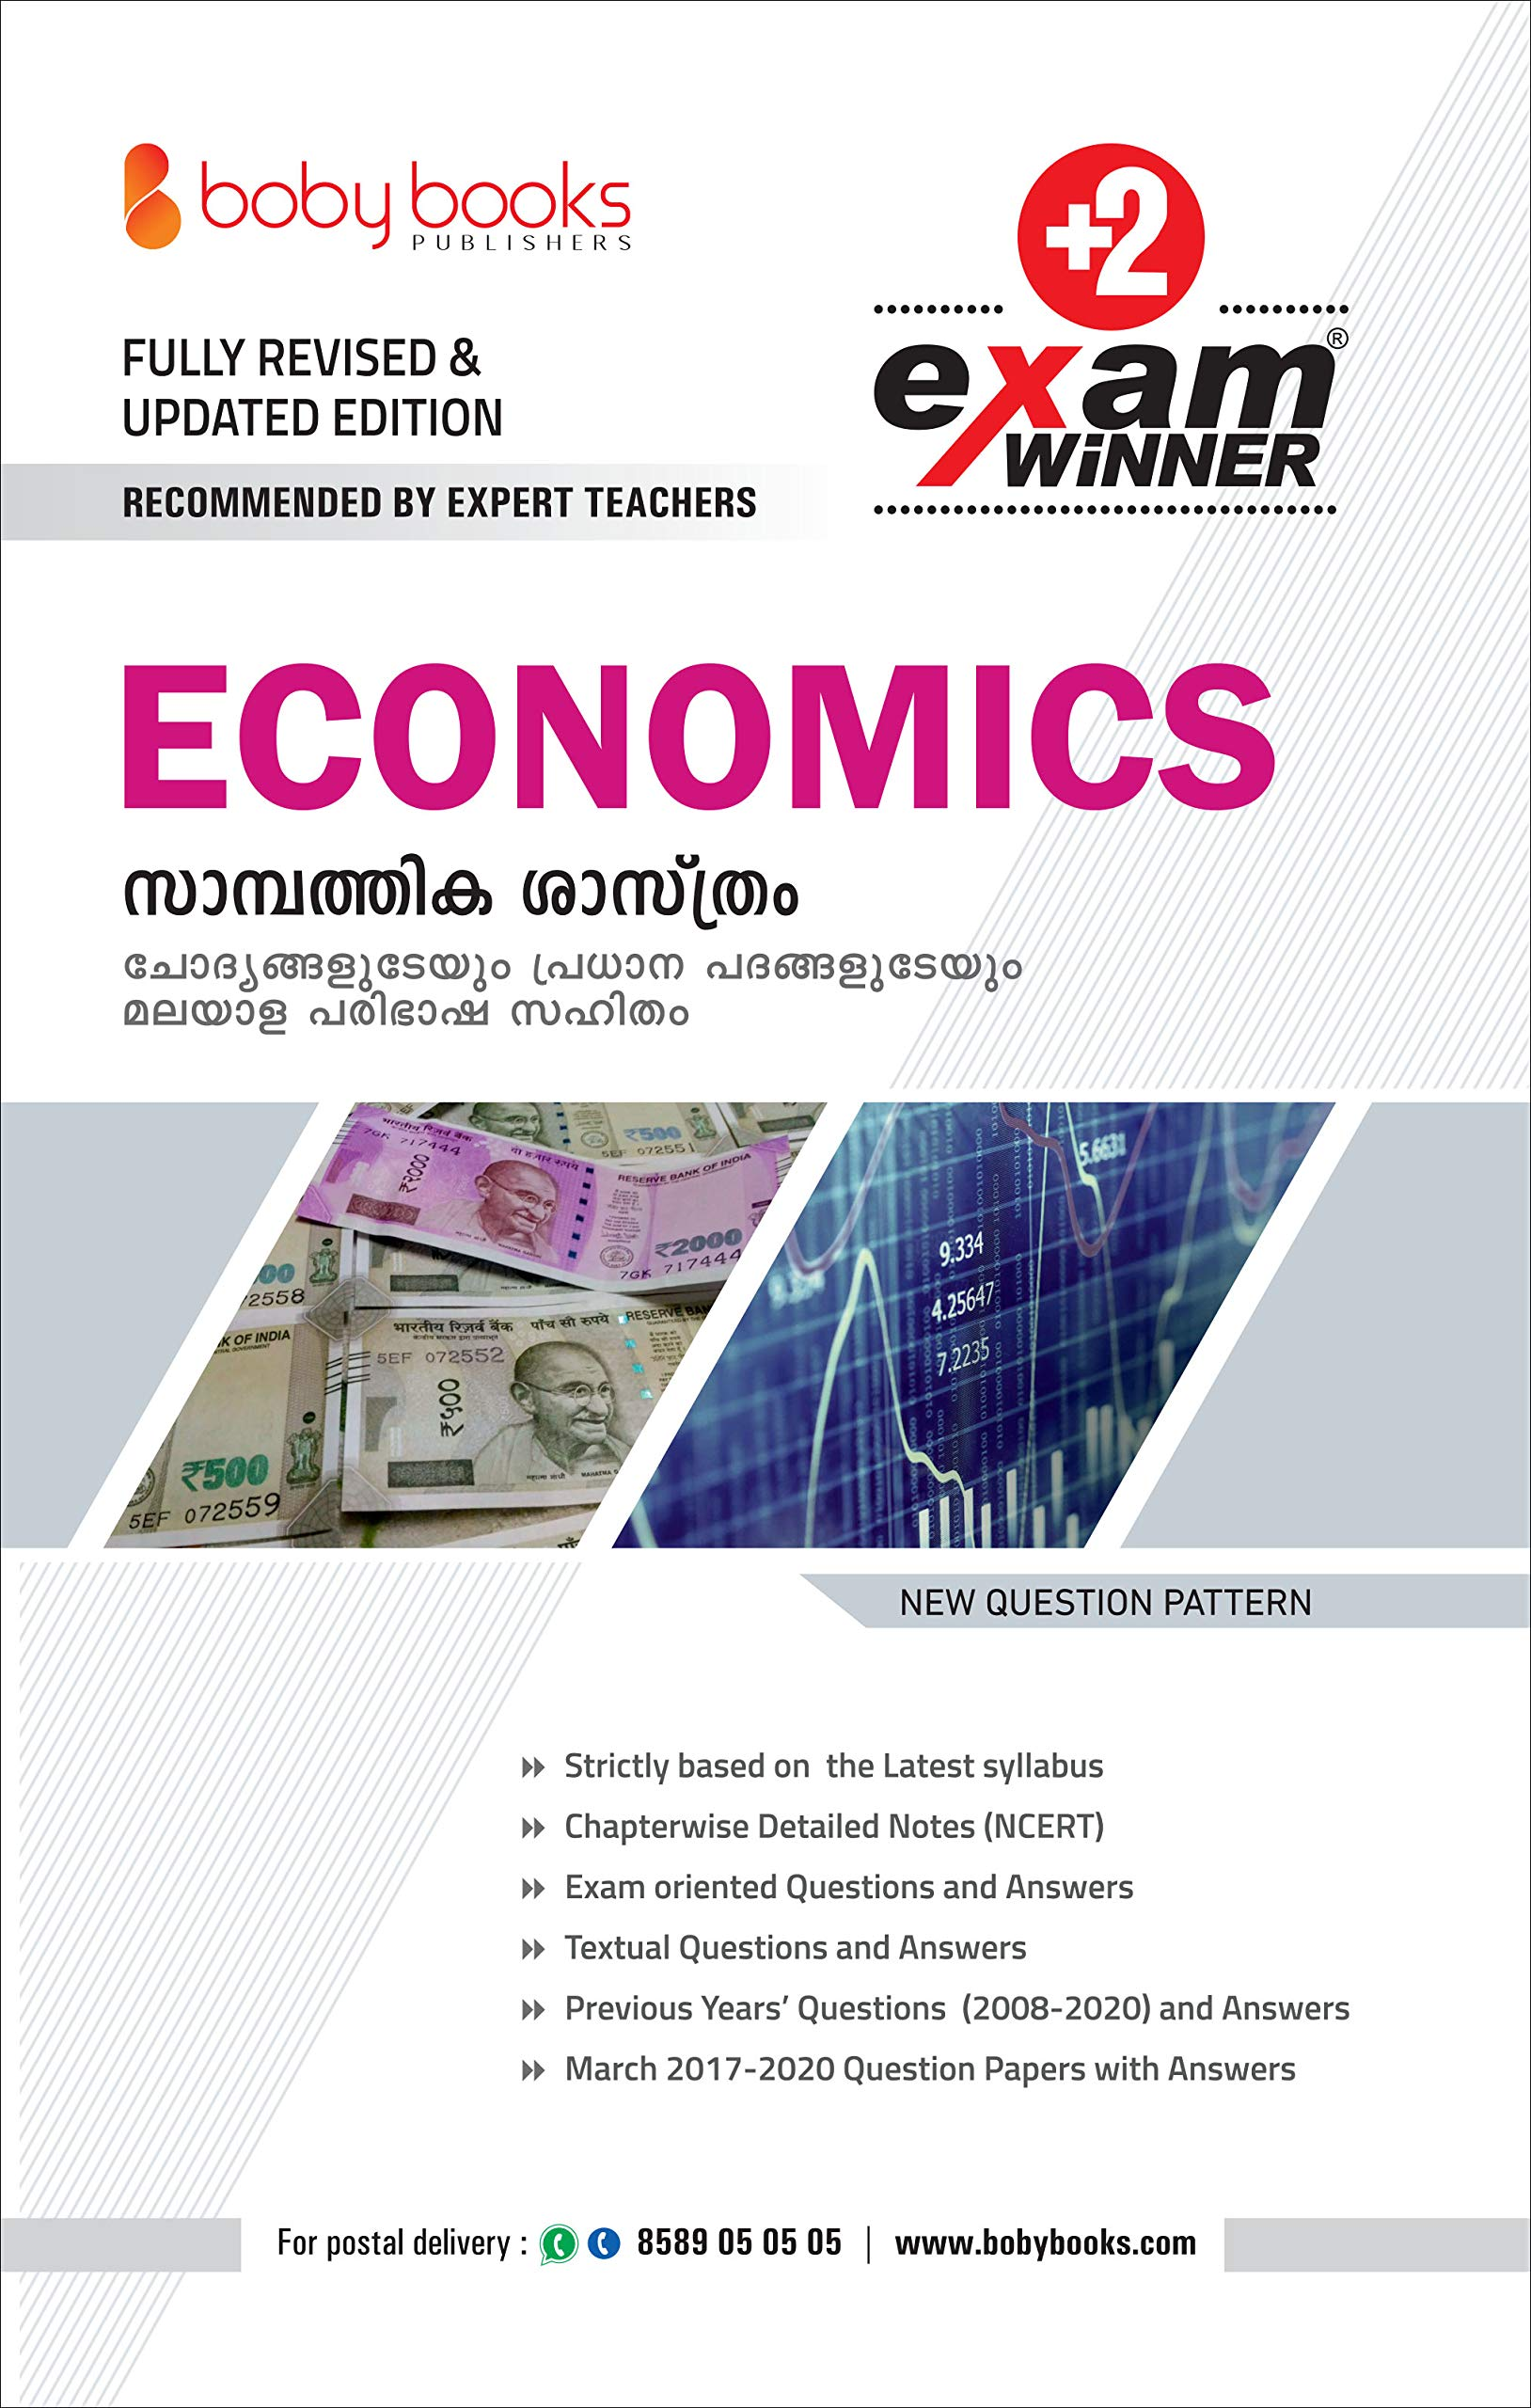 Plus Two Economics Textbook Pdf Download